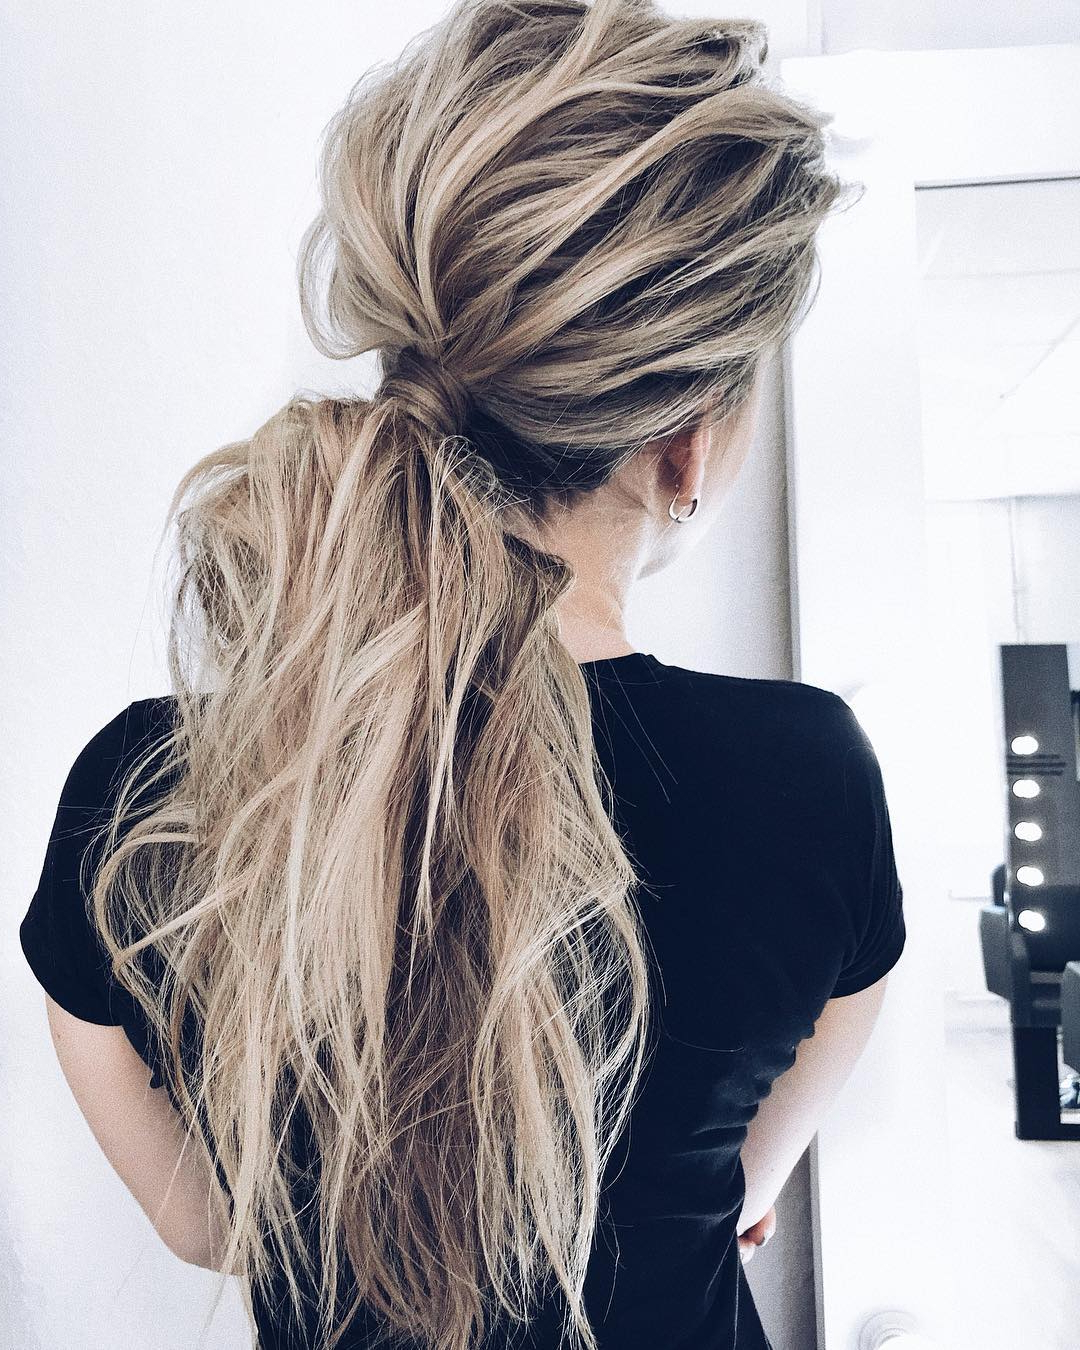 10 Creative Ponytail Hairstyles For Long Hair, Summer In Well Known Messy High Ponytail Hairstyles With Teased Top (Gallery 4 of 20)